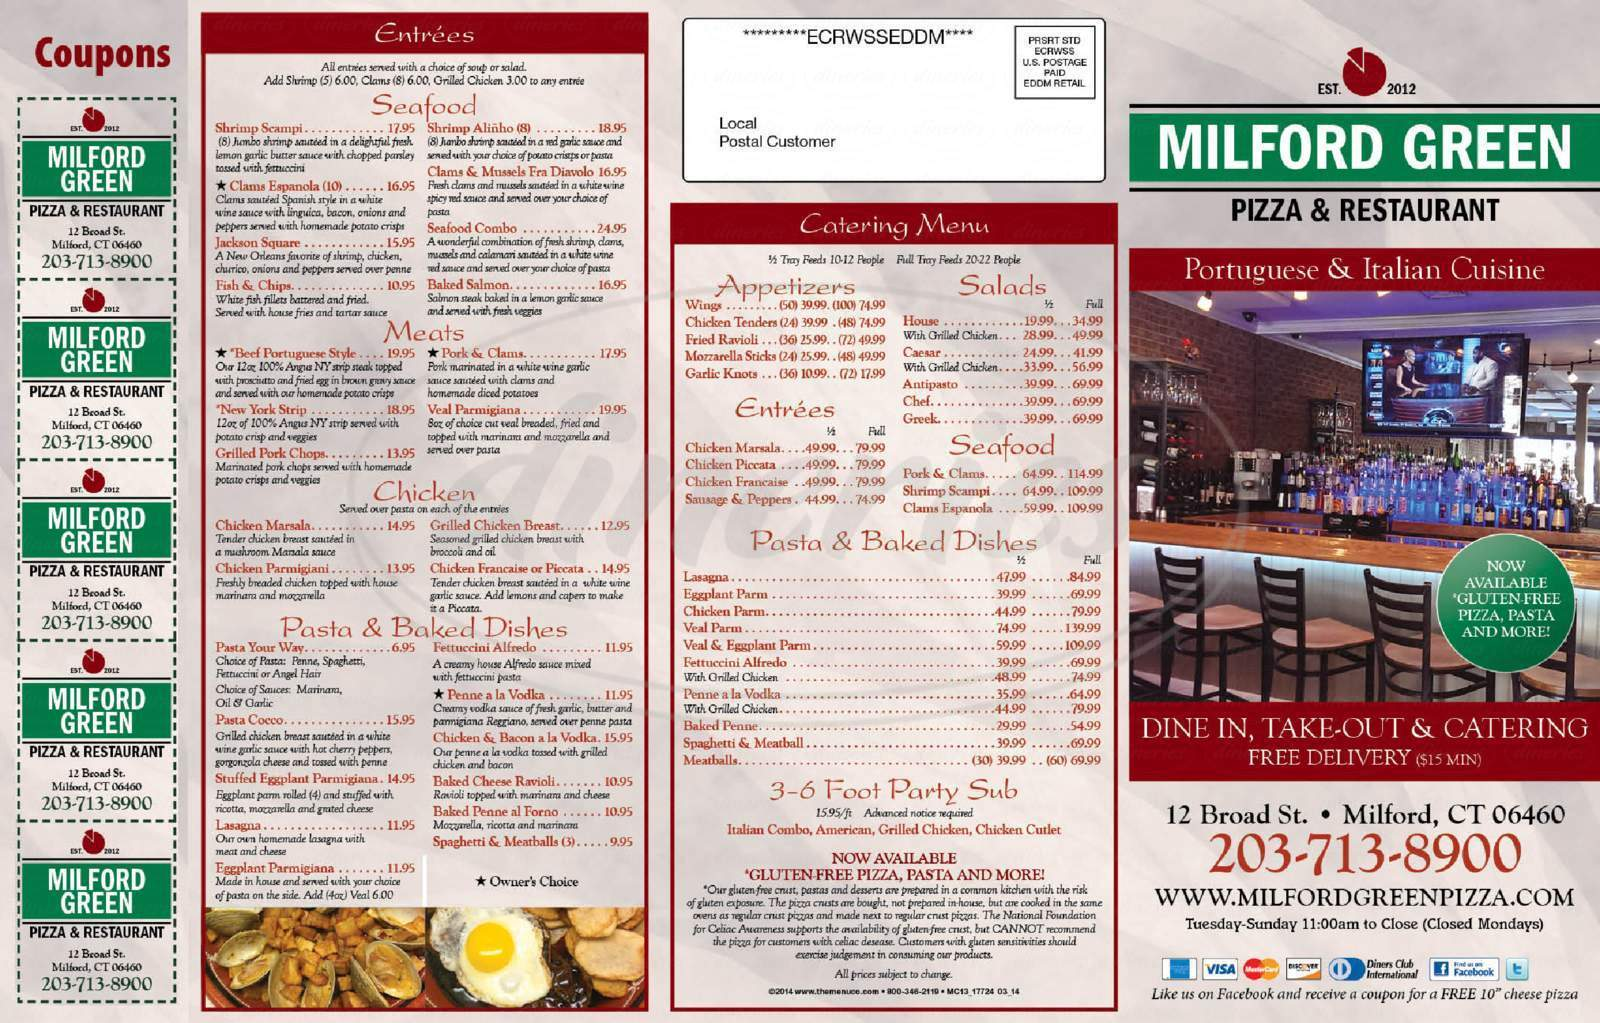 menu for Milford Green Pizza & Restaurant